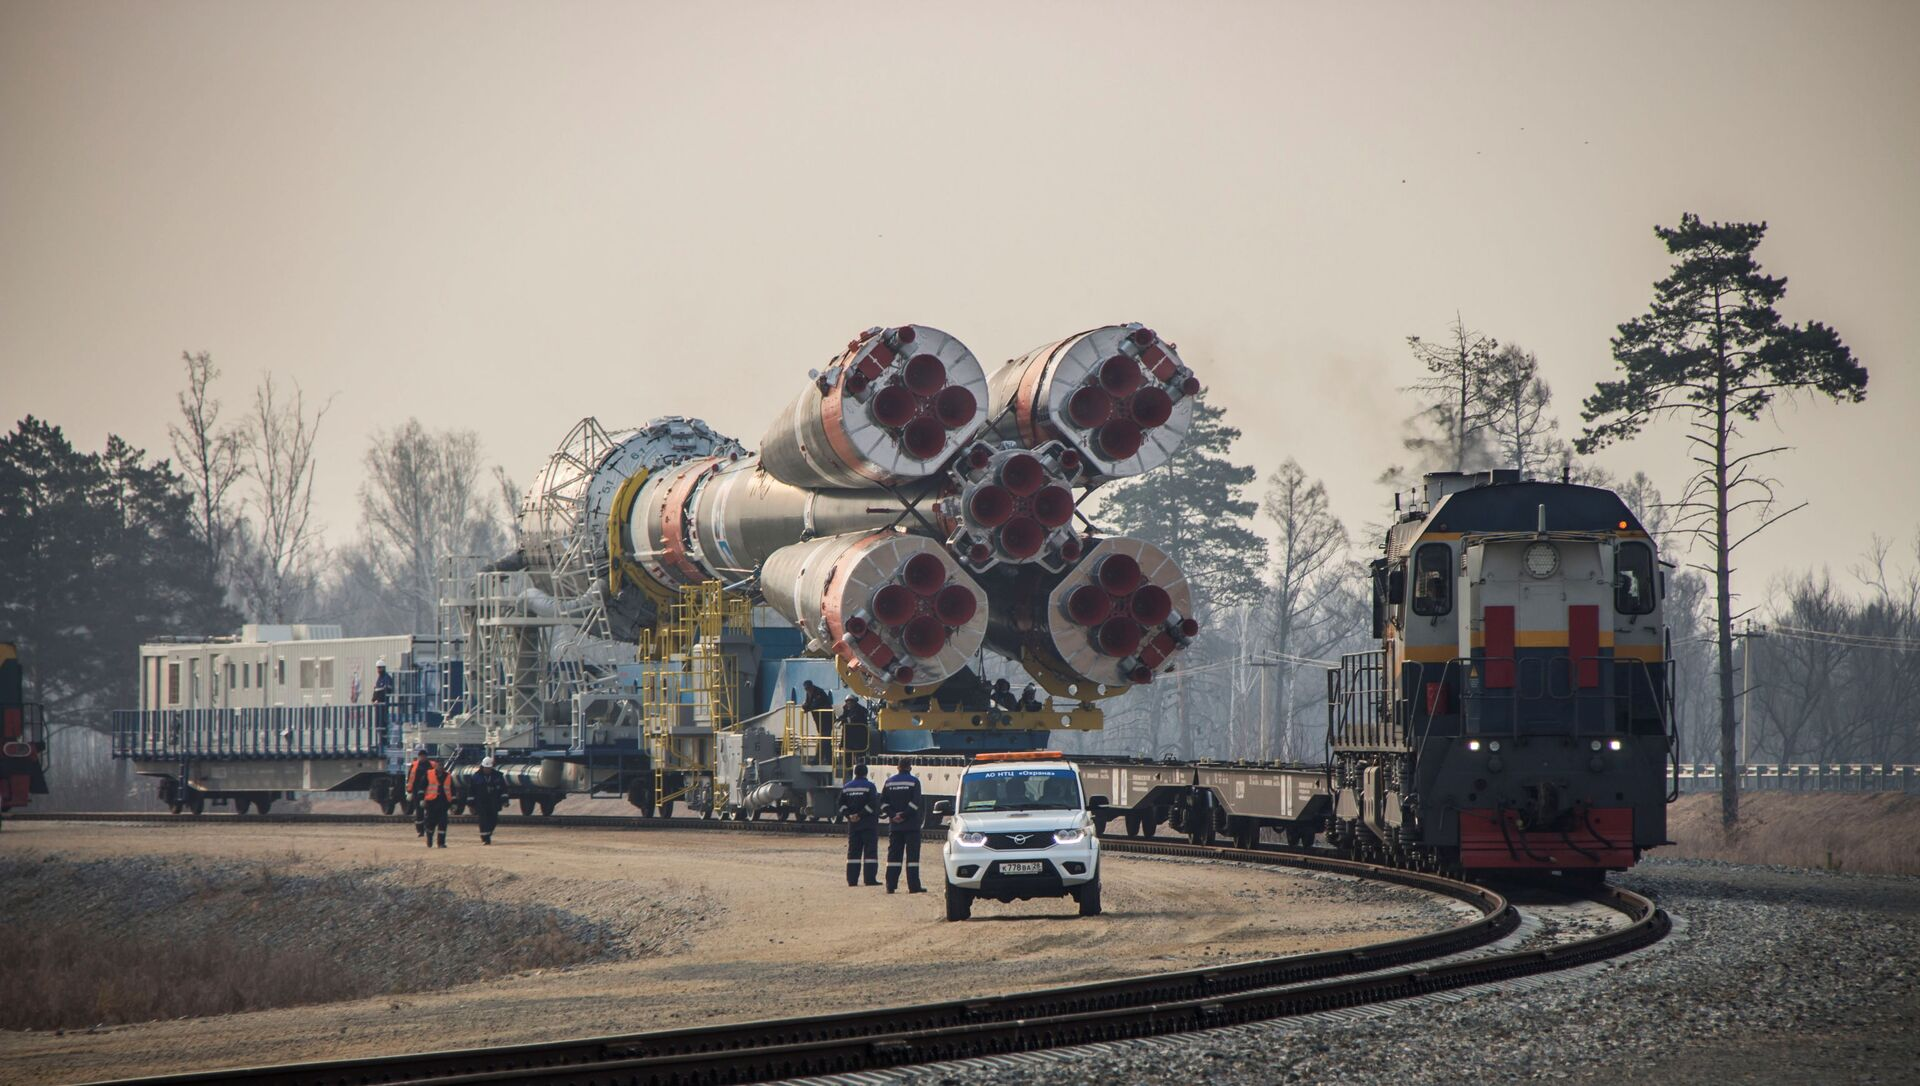 A Soyuz-2.1b rocket booster with a Fregat upper stage and satellites of British firm OneWeb is transported from a technical facility to a launch pad at the Vostochny Cosmodrome in Amur Region, Russia April 22, 2021. - Sputnik International, 1920, 31.07.2021